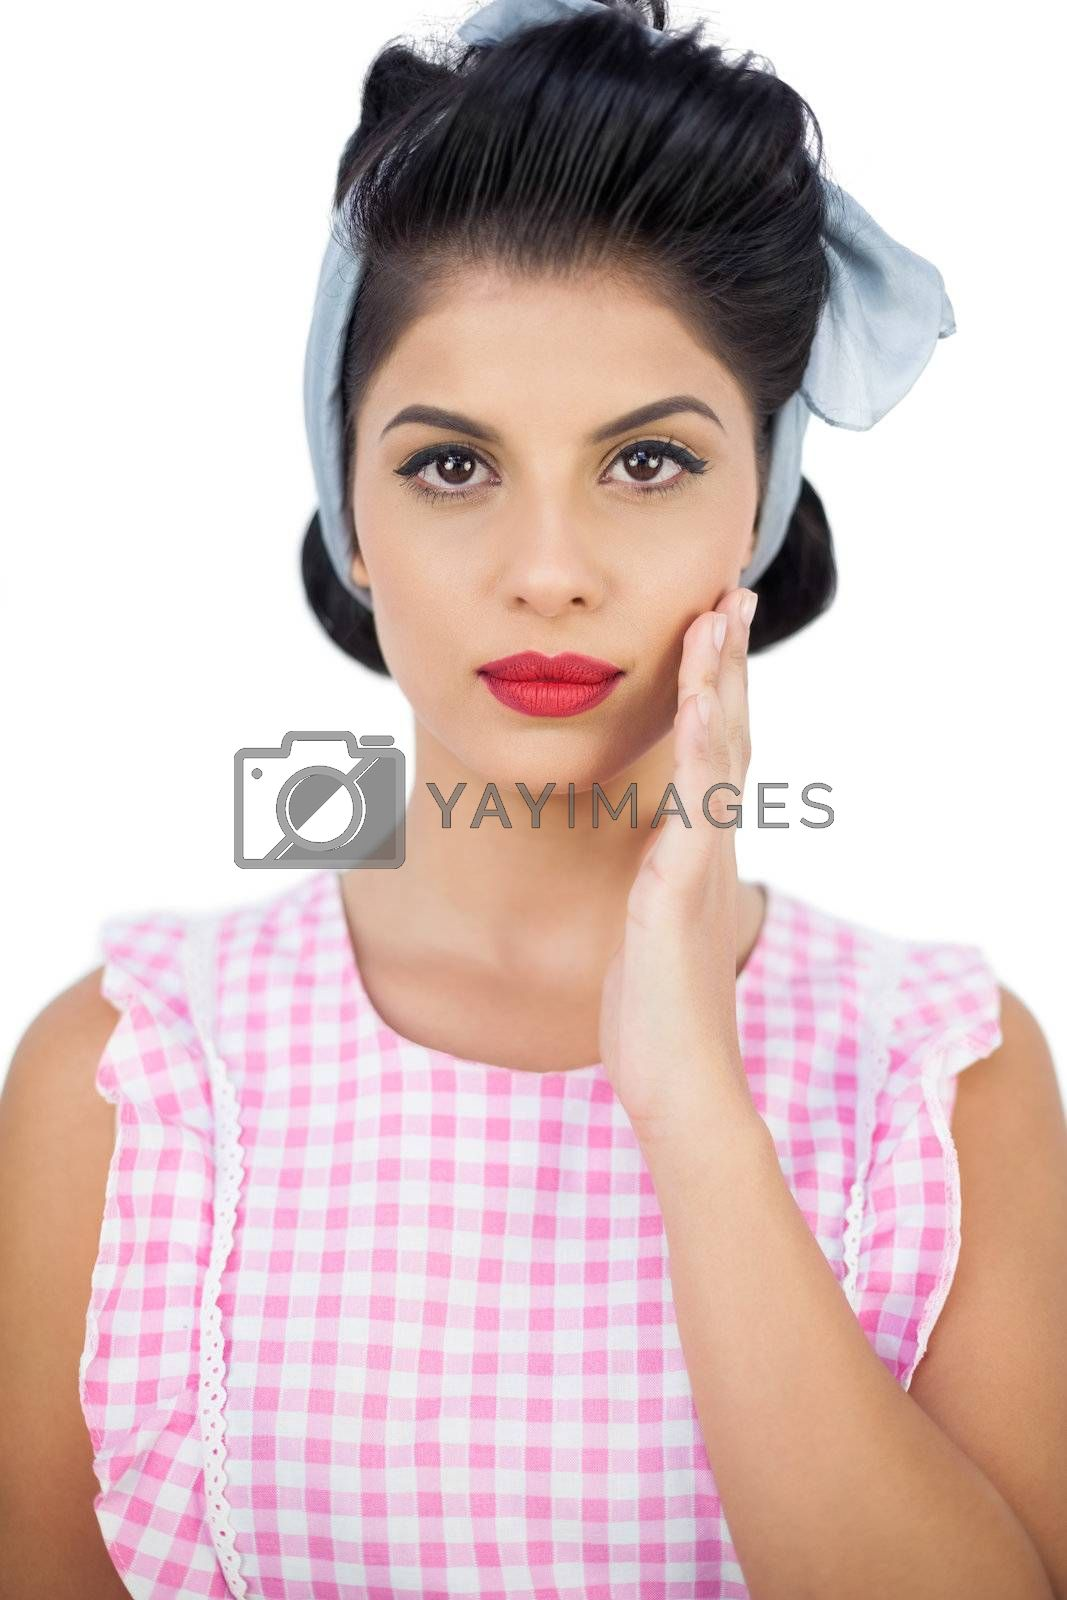 Serious black hair model posing with a hand on the cheek by Wavebreakmedia